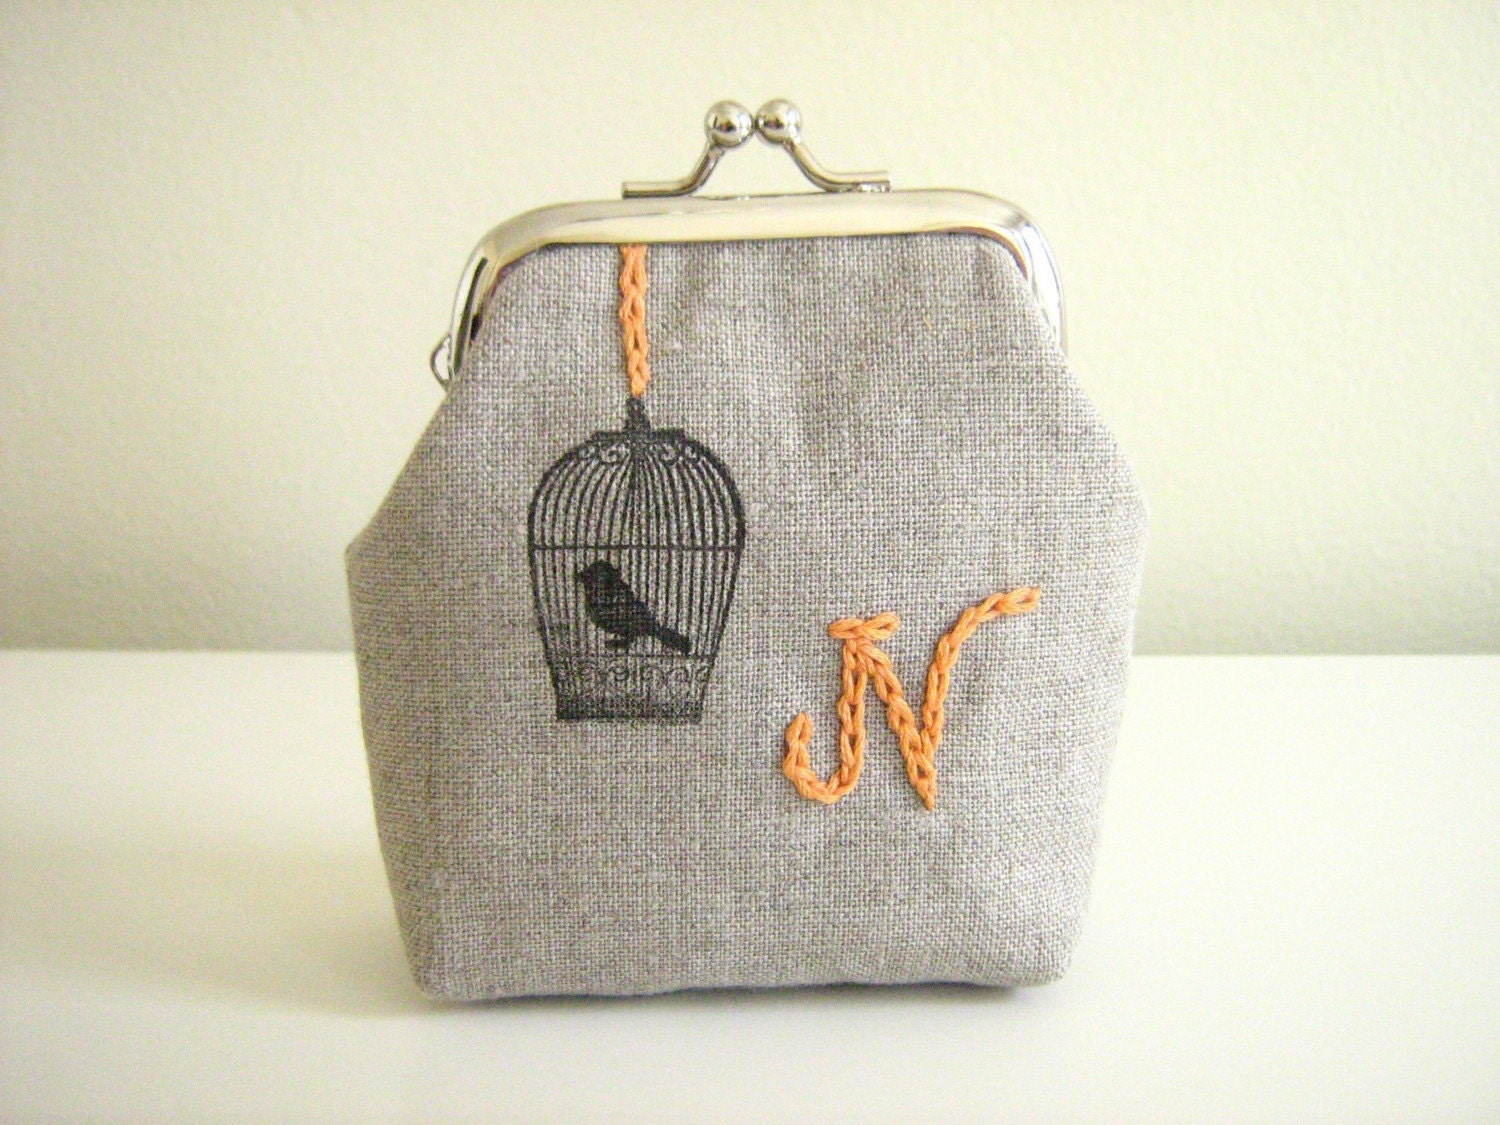 Choose your own Initial- Bird in a Cage mini clasp purse- ships free to U.S. and Canada